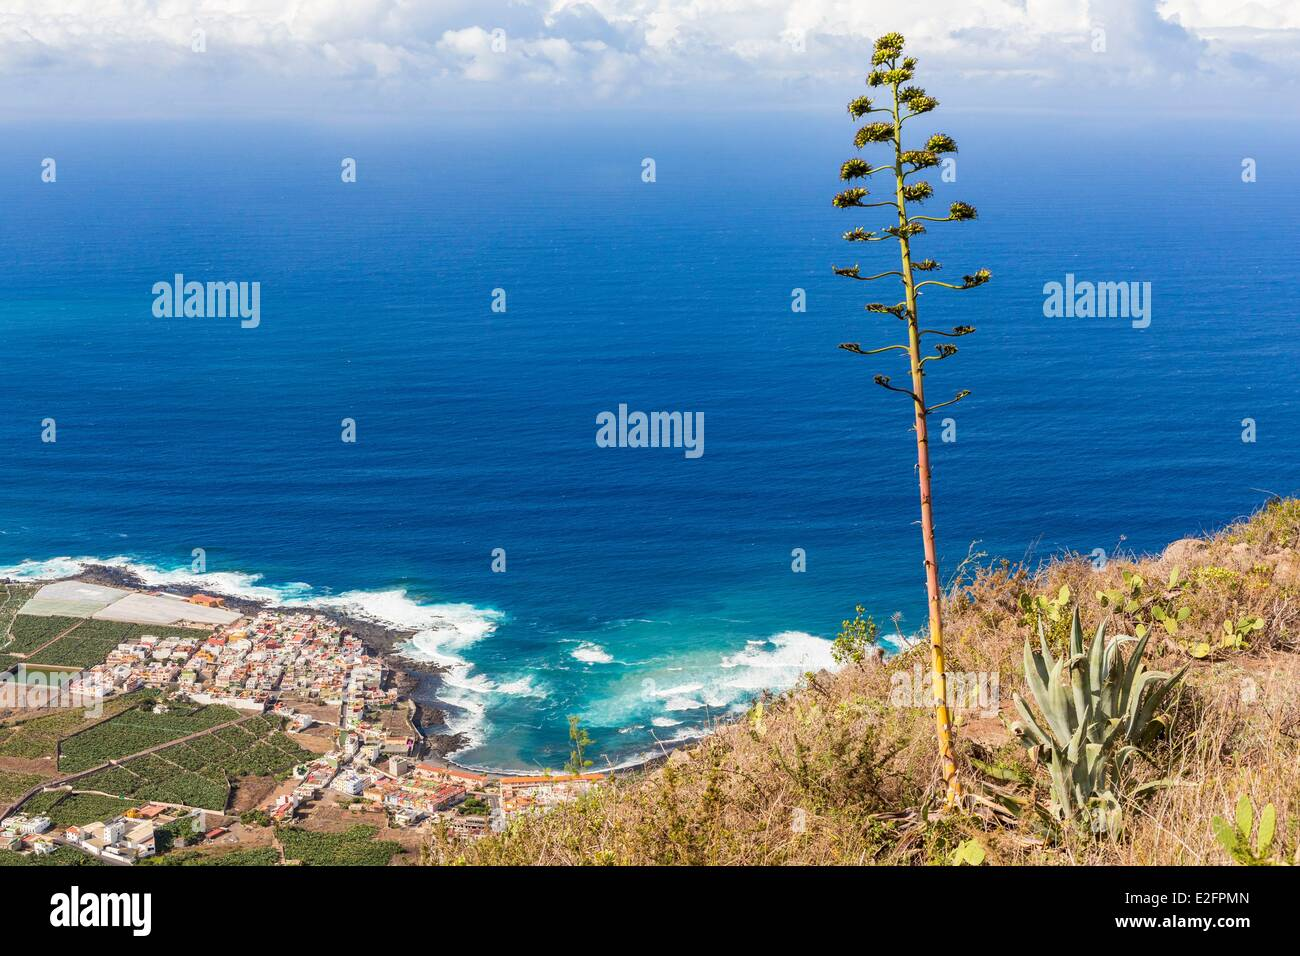 Spain Canary Islands Tenerife Island Adeje American agave with in the background La Caleta and banana - Stock Image